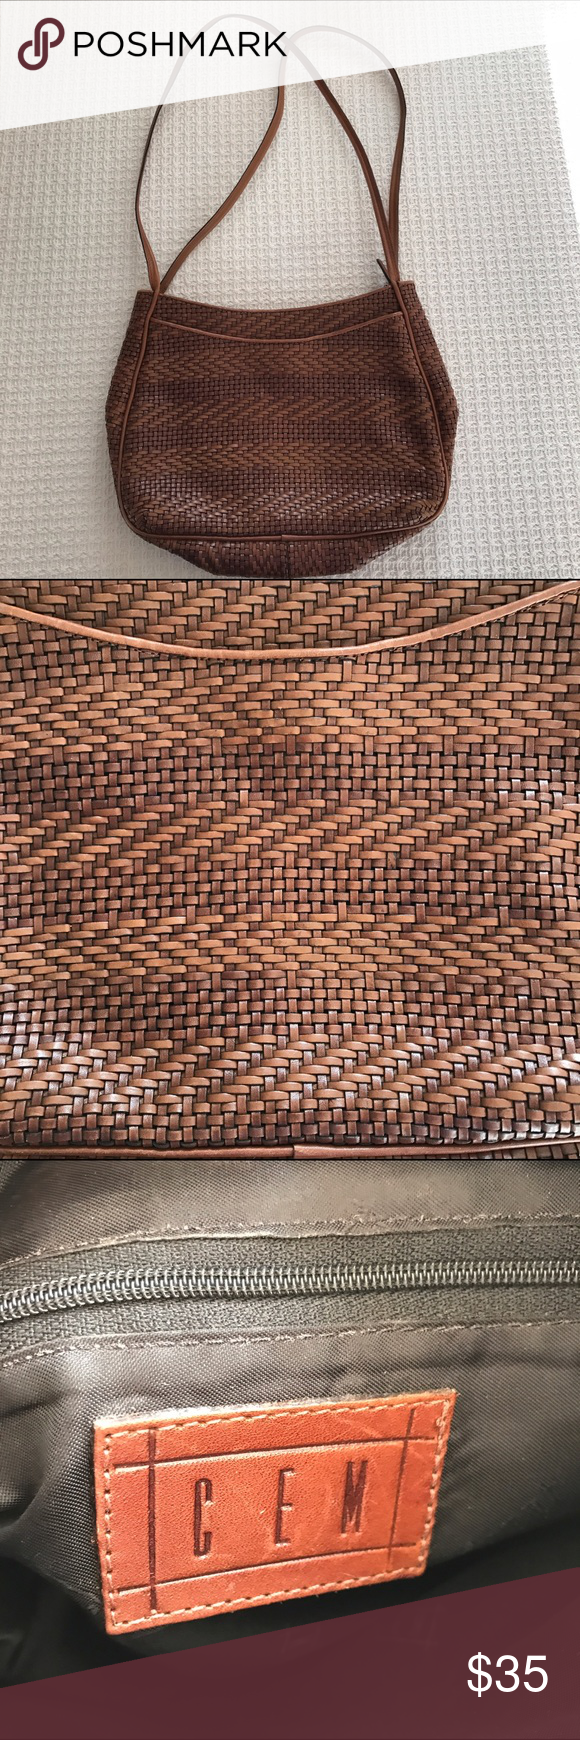 Woven CEM purse Cute woven purse by CEM. This was only used a few times and is in very good condition! Feel free to ask questions or make an offer! CEM Bags Shoulder Bags